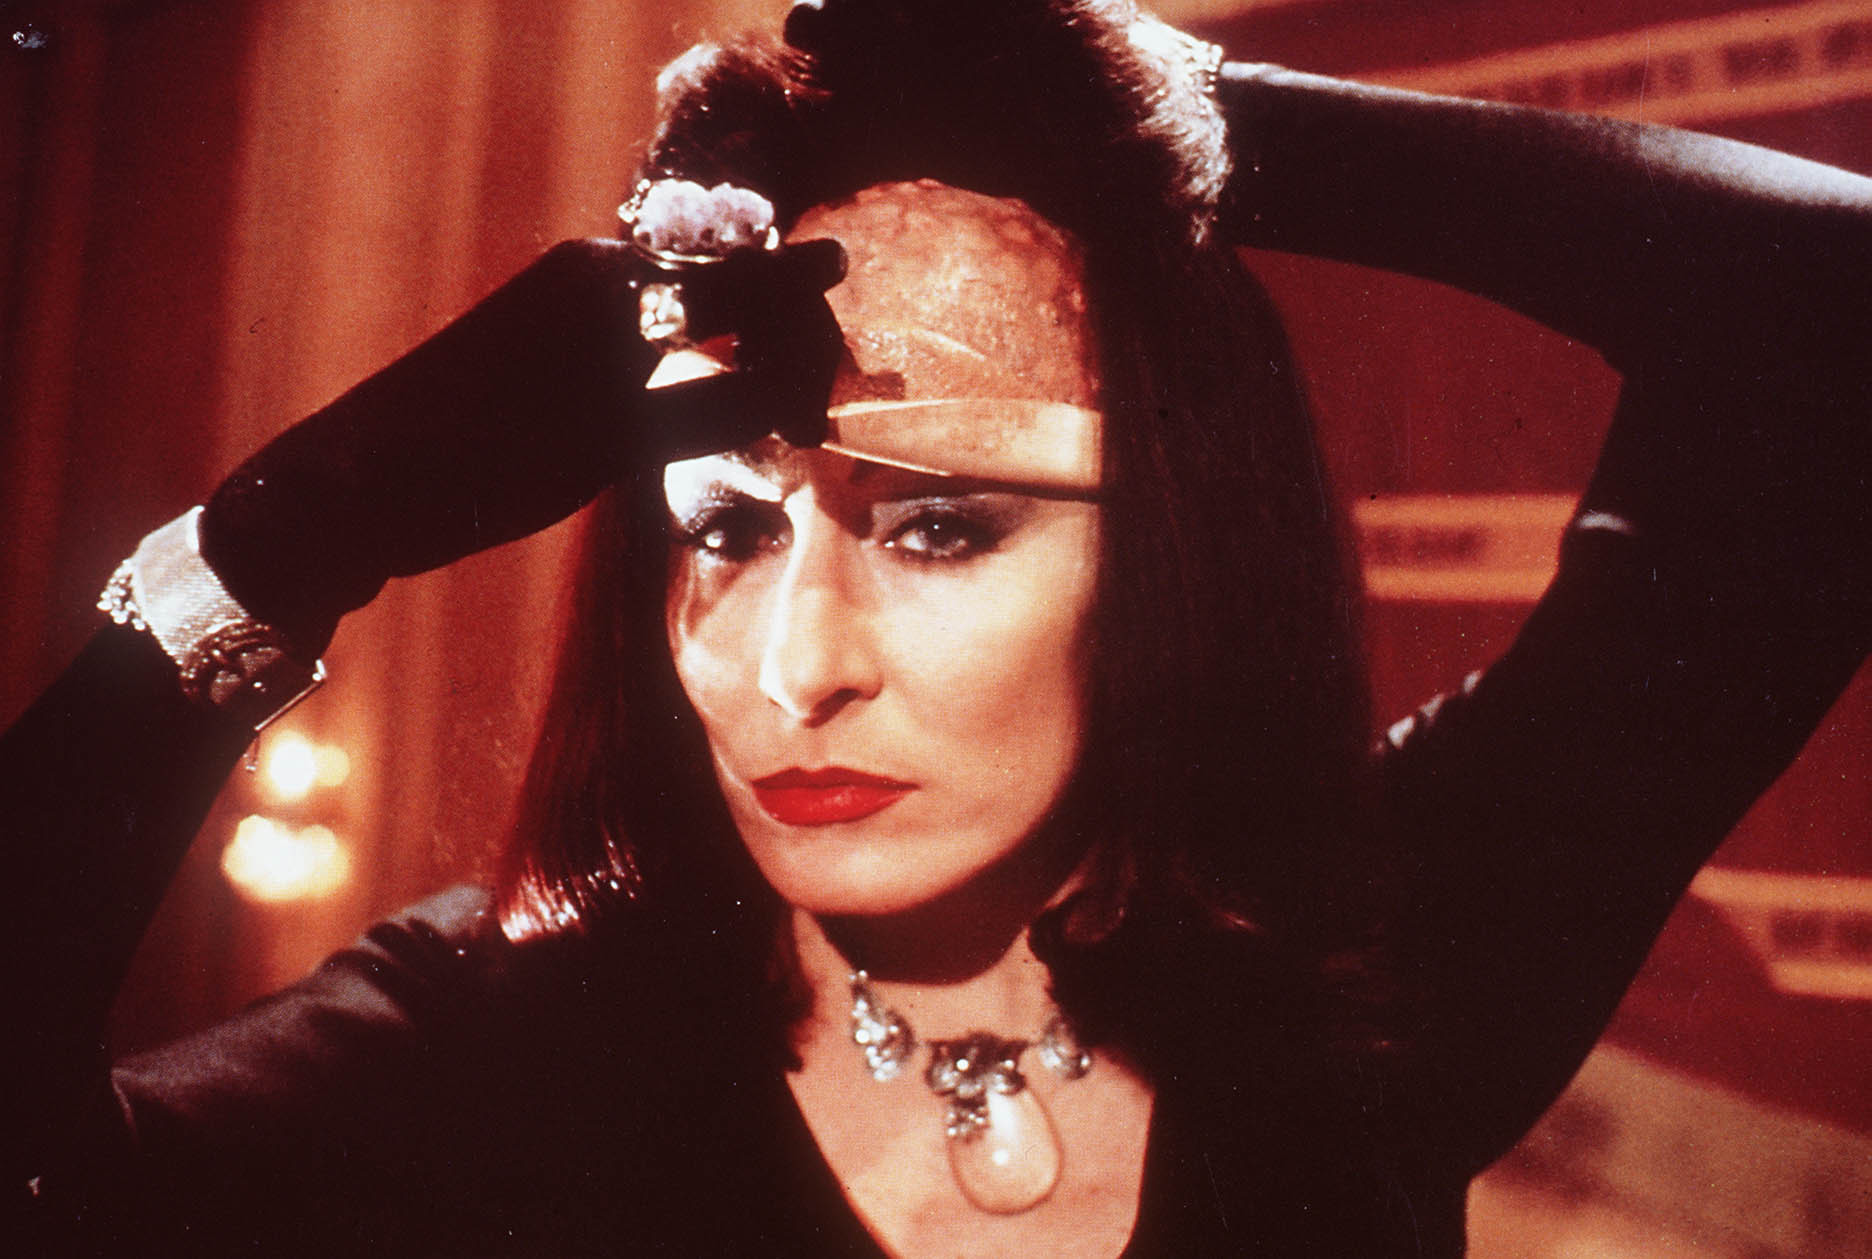 The Grand High Witch (Anjelica Huston)